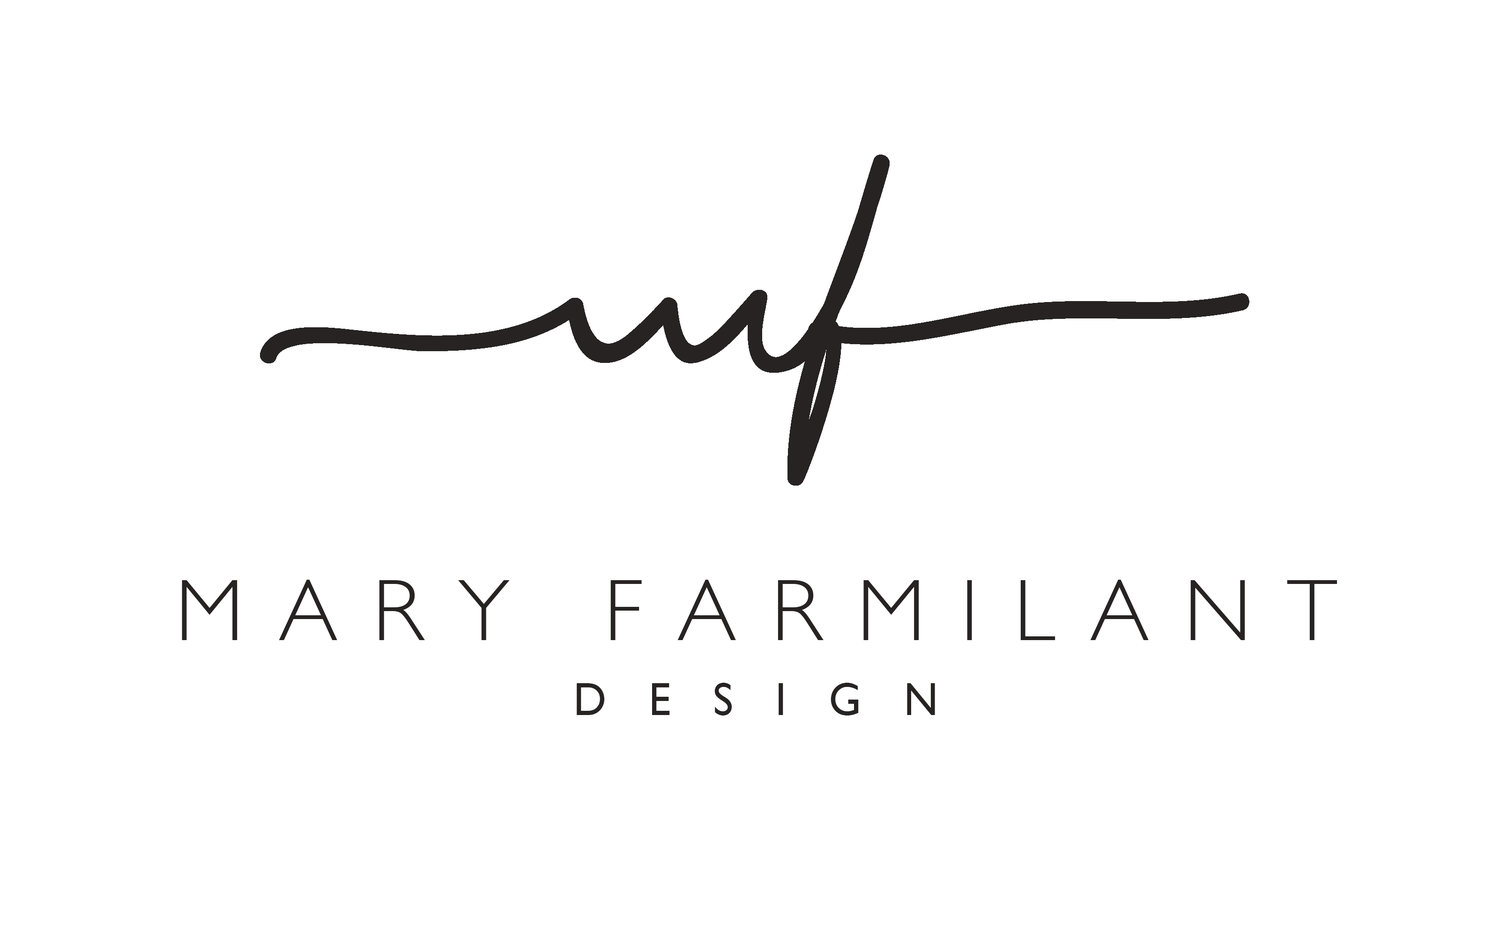 Mary Farmilant Design